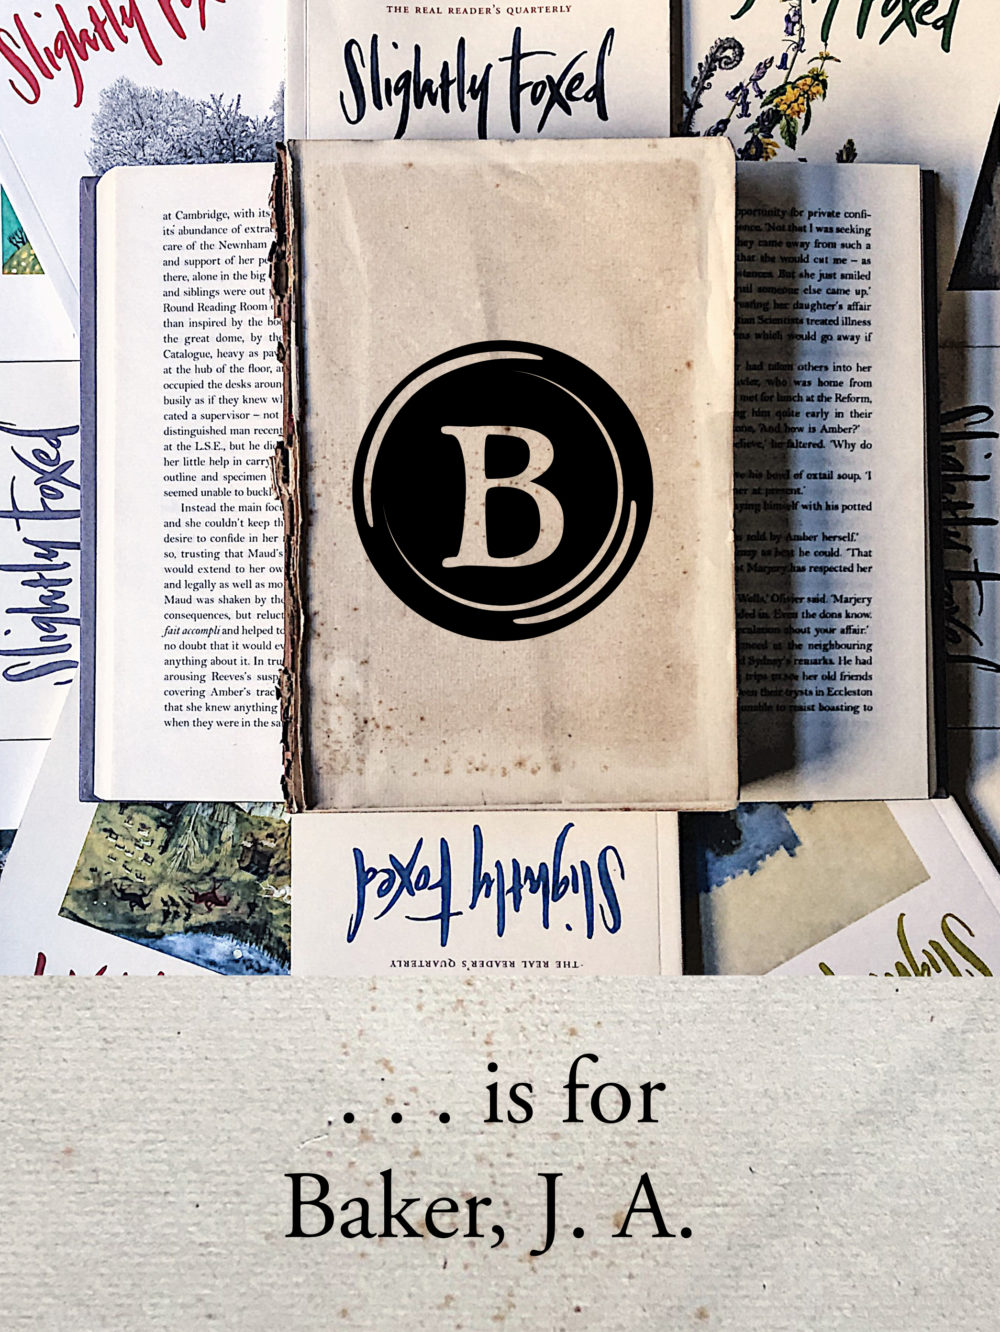 B is for Baker, J. A. | From the Slightly Foxed archives